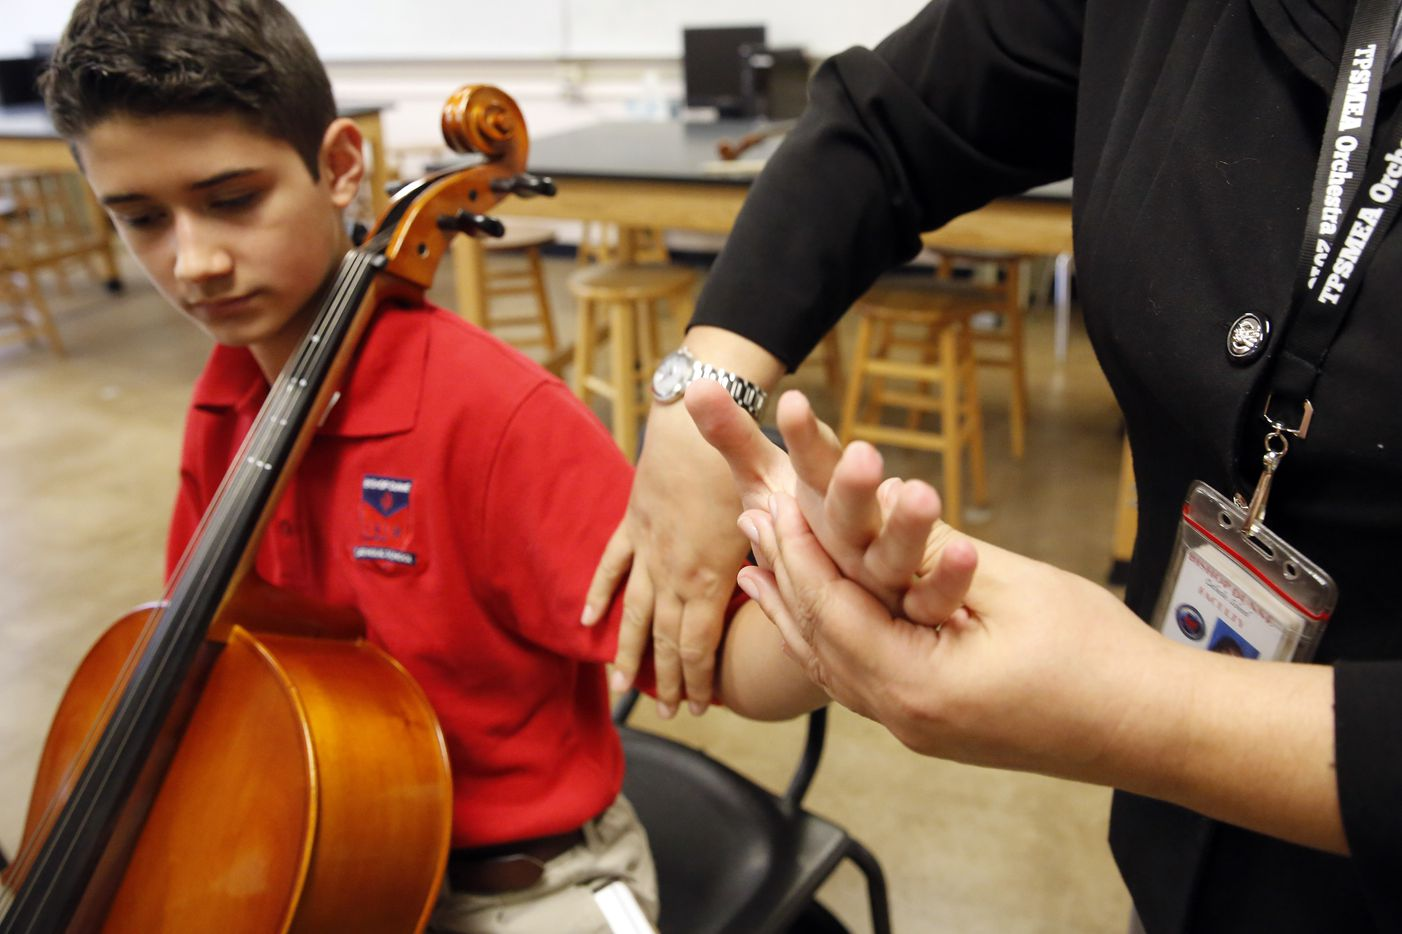 Instructor Julia Gray-Lion guides Zach on the arm motion he will use to play the cello, during his second lesson at Bishop Dunne Catholic School in Dallas.